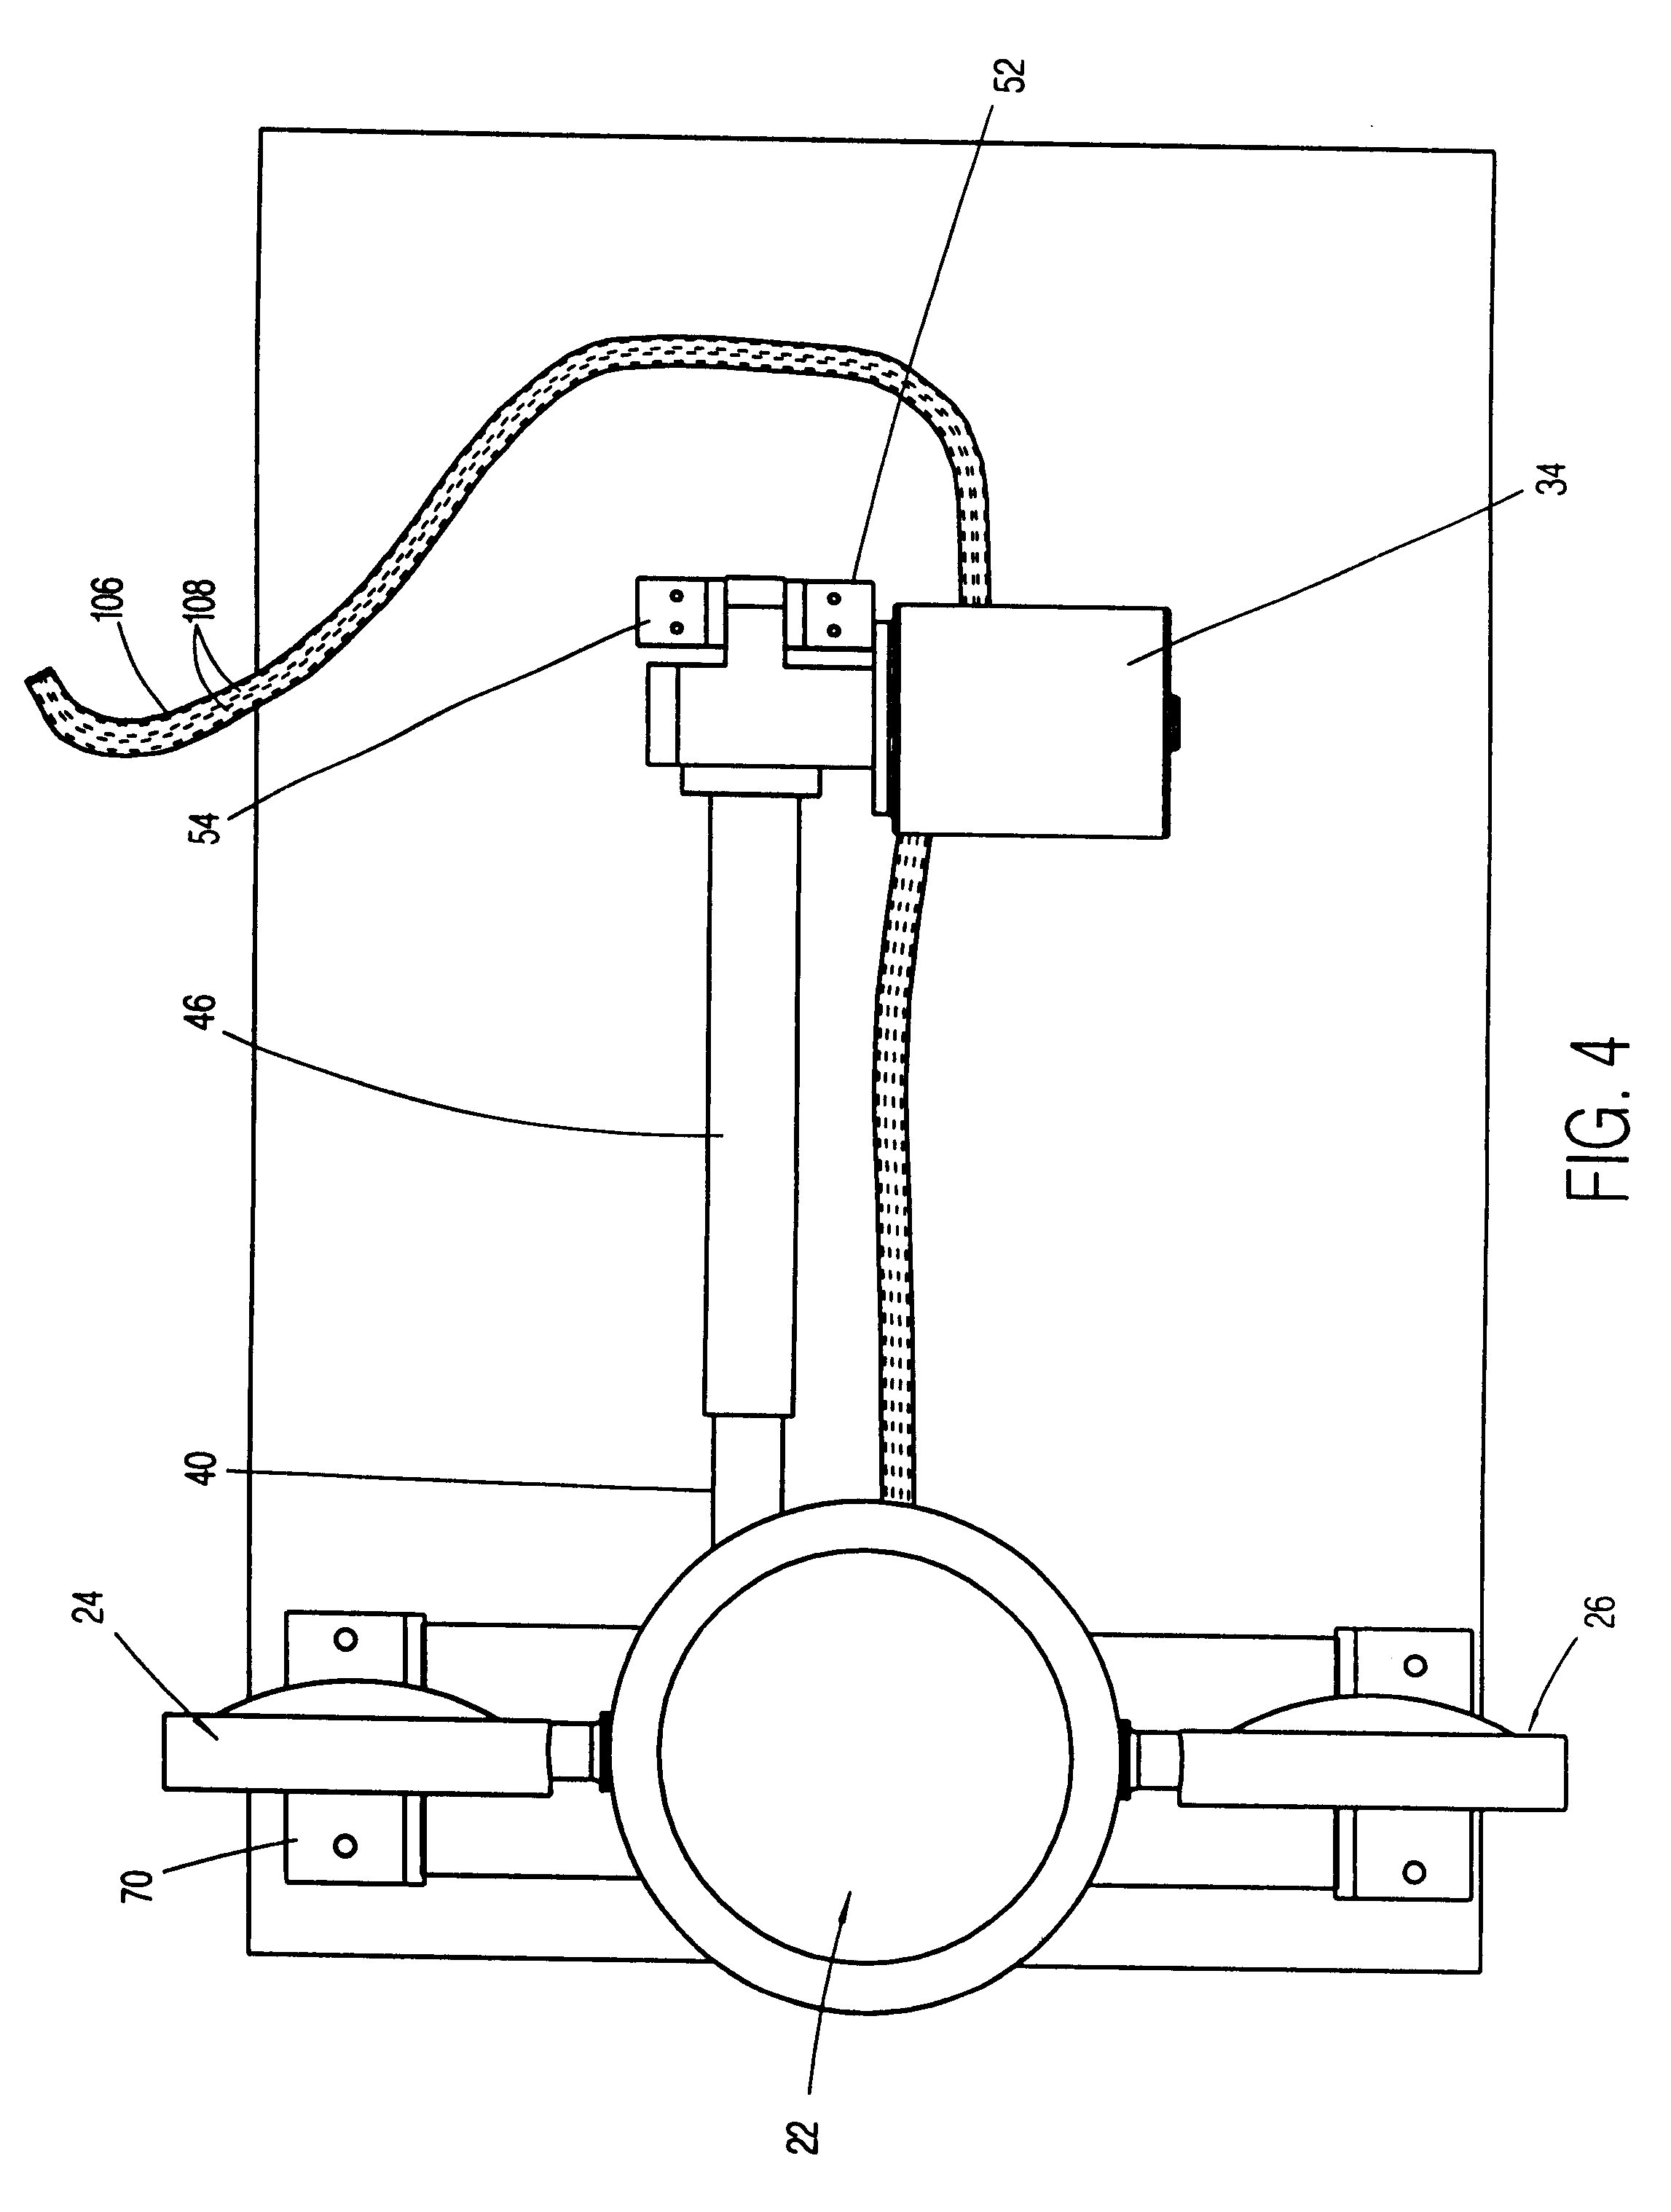 Us6484456 Telescoping Mast Assembly Unitrol Touchmaster Wiring Diagram Patent Drawing